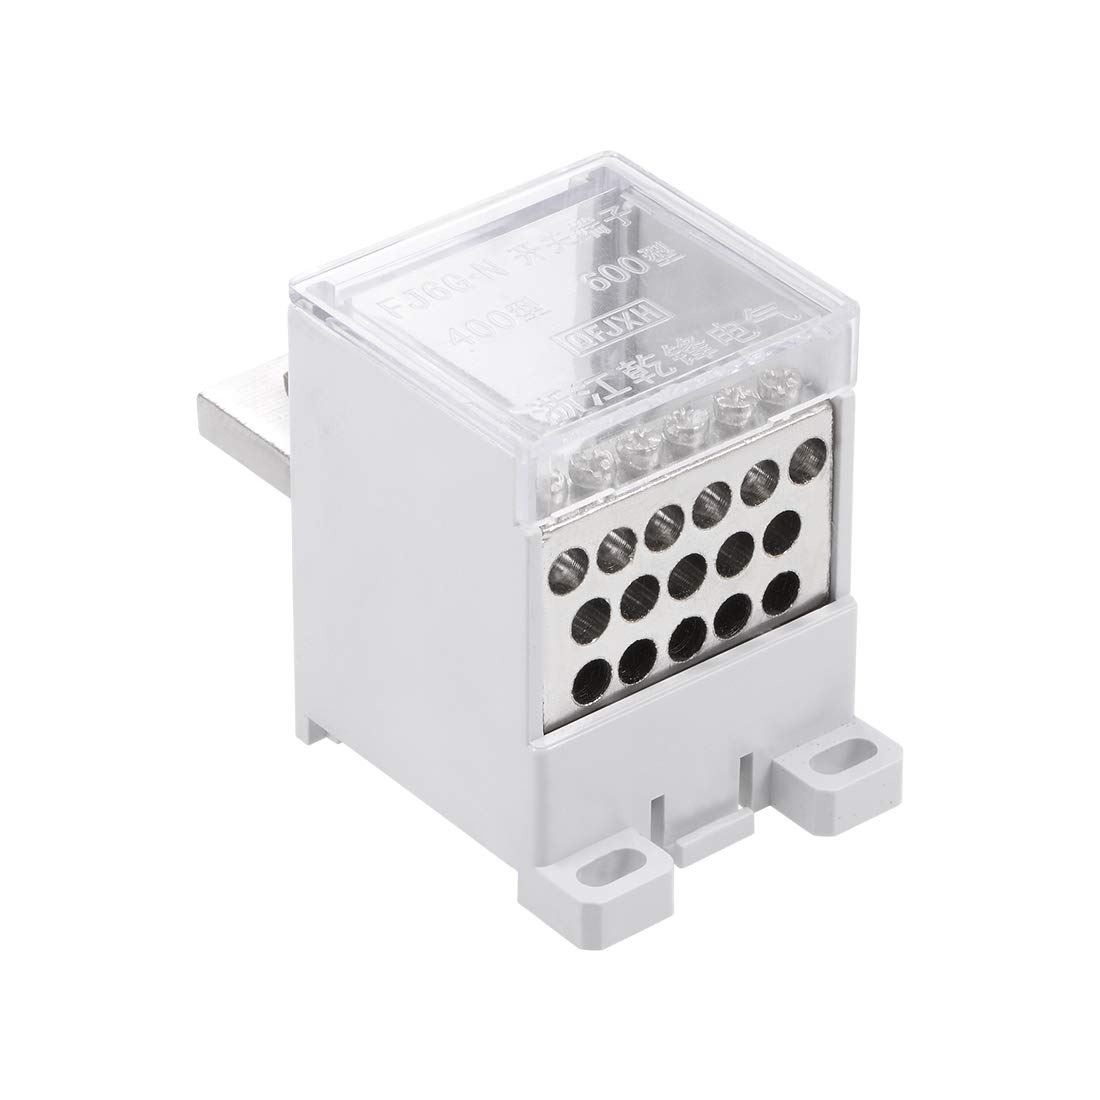 uxcell 1 in 16 Out DIN Rail Terminal Blocks 690V 400A Max Input Distribution Block for Circuit Breaker